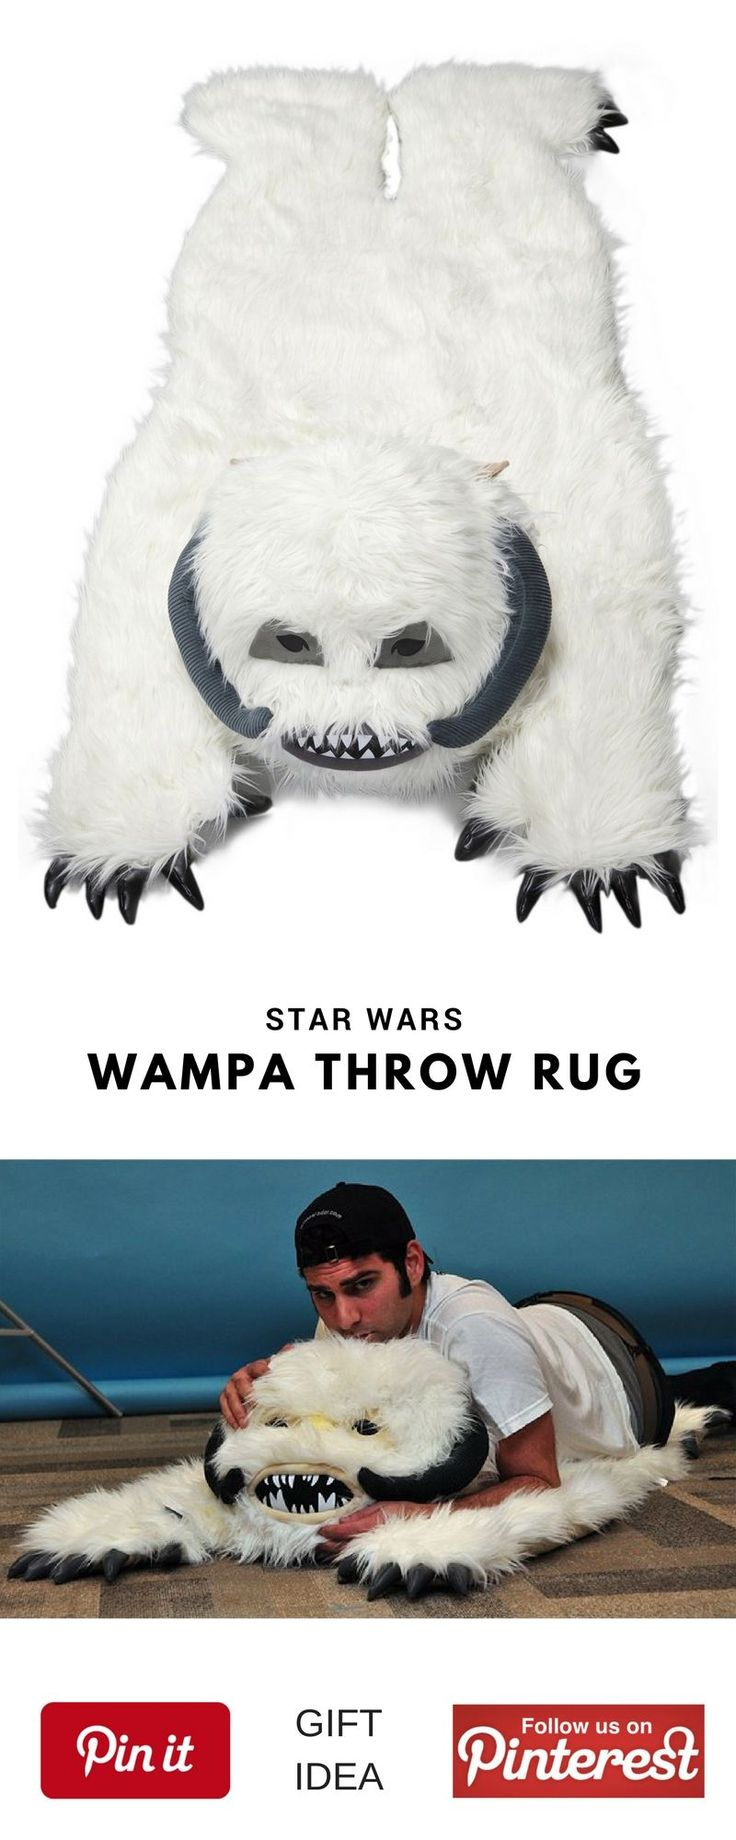 Star Wars Wampa Throw Rug. This could be a great best gift for geek friend,  mother's or father's day, birthday for women or men, girls, boys and little kids, christmas, girlfriend, boyfriend, couples, valentine, bridesmaid, graduation, weeding, engagement and retirement. It's an inexpensive great meaning present and personalized for any funny guys anniversary. #geek #cheap #unique #weird #DIY #unusual #homemade #online #coolideas #shop #her #him #starwars